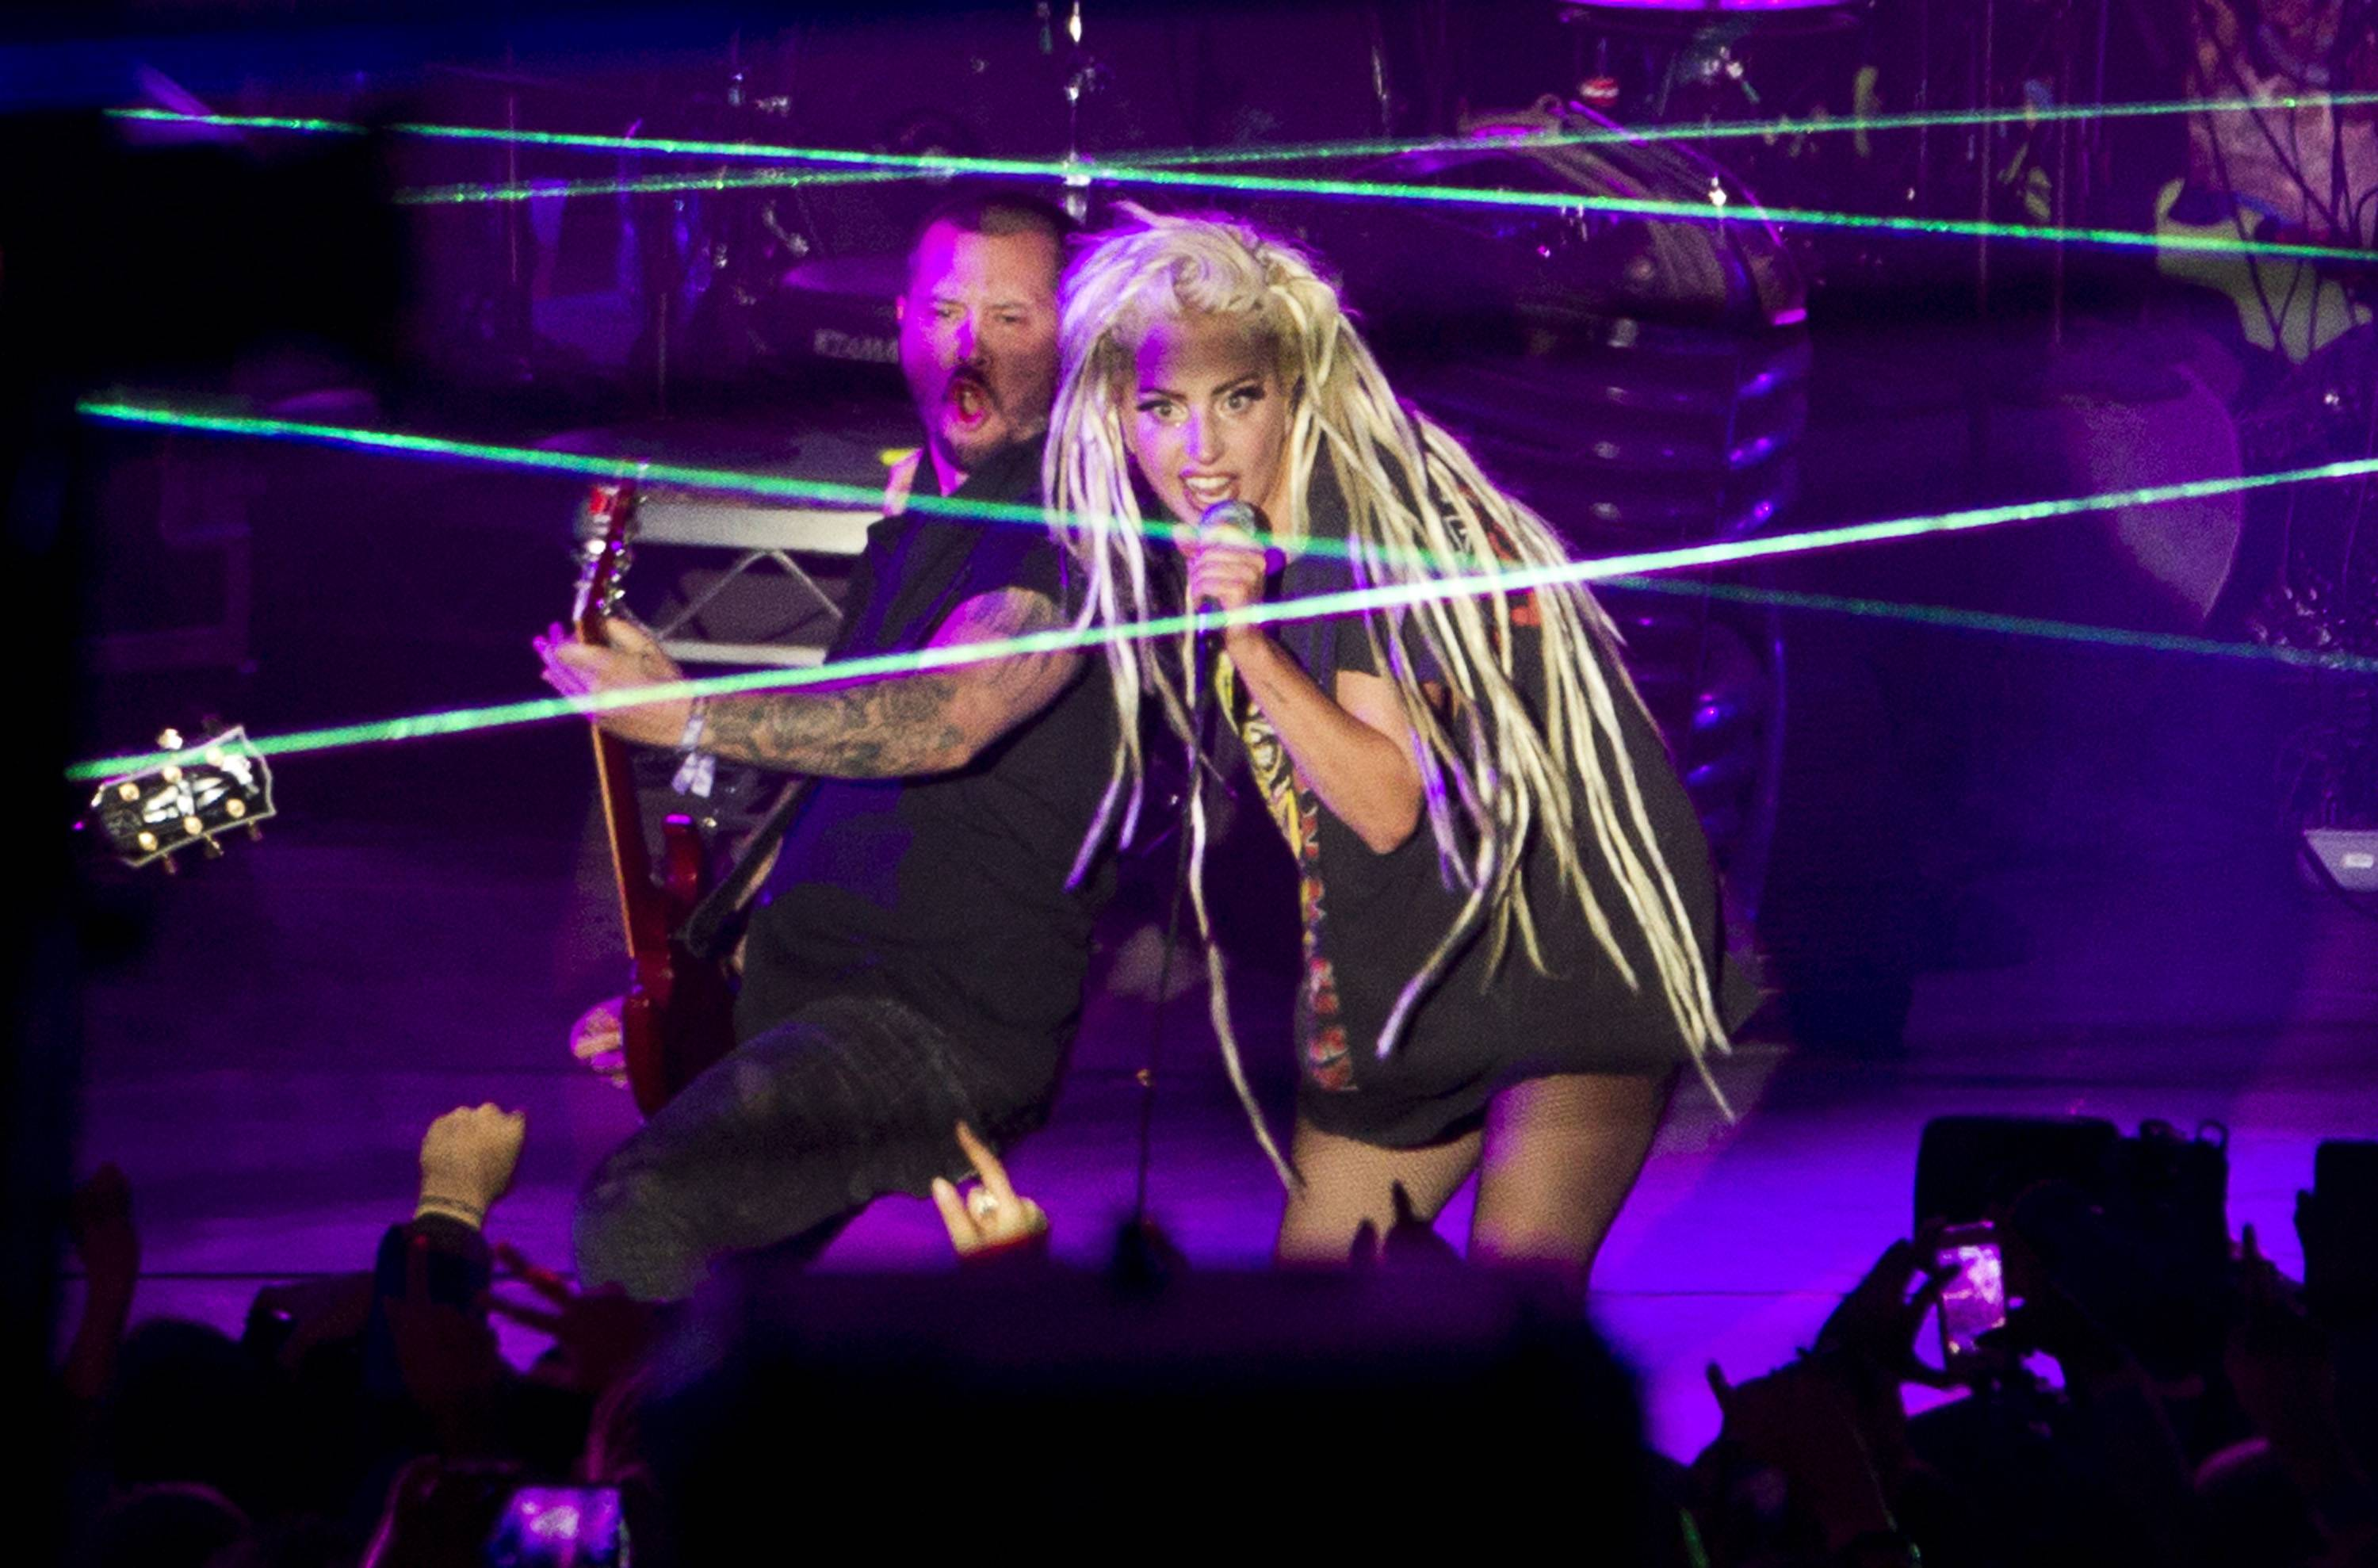 Lady Gaga performs at Stubb's in Austin, Texas, during the South by Southwest Music Festival on Thursday March 13, 2014.